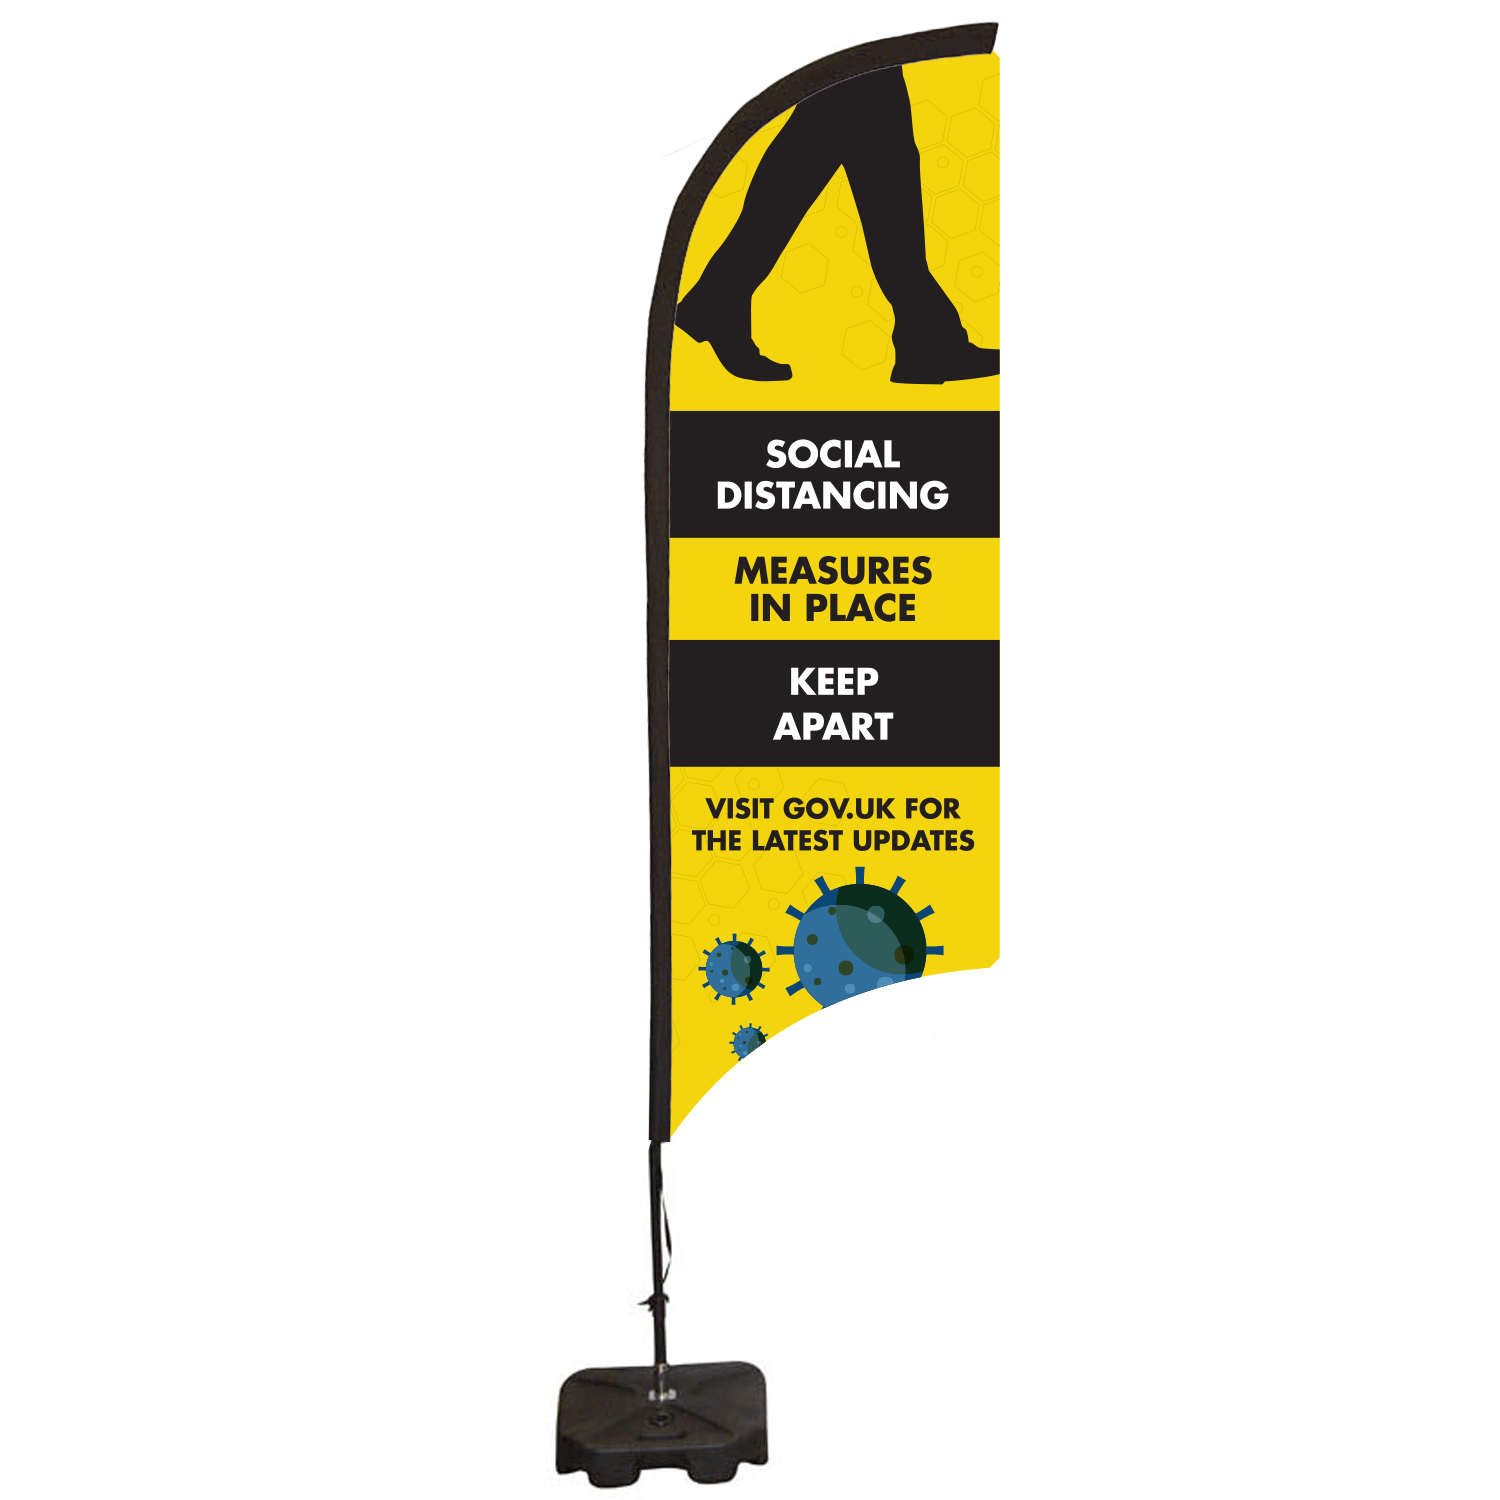 Social Distancing Feather Flag Banner - Small 698 x 2253mm